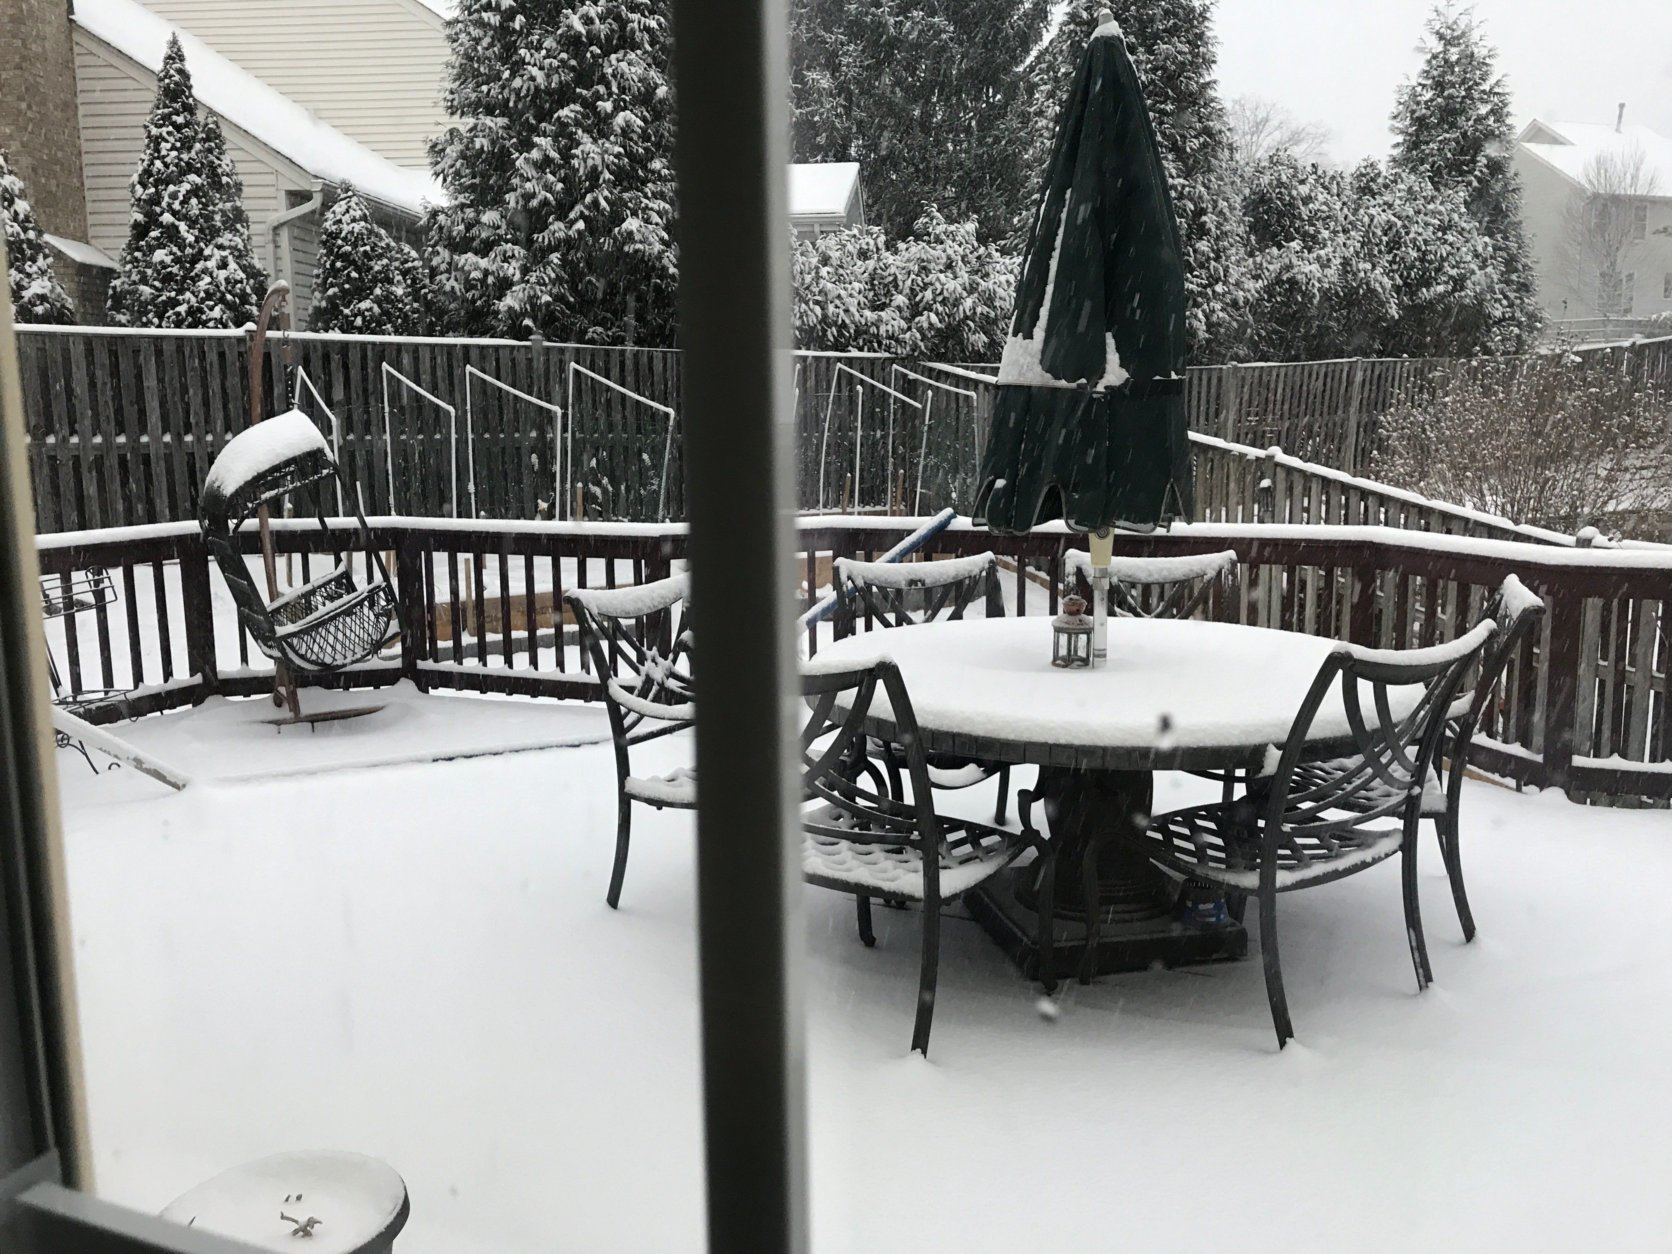 Snow piles up in the Clifton/Centreville area of Fairfax County, Virginia. (WTOP/Ana Srikanth)